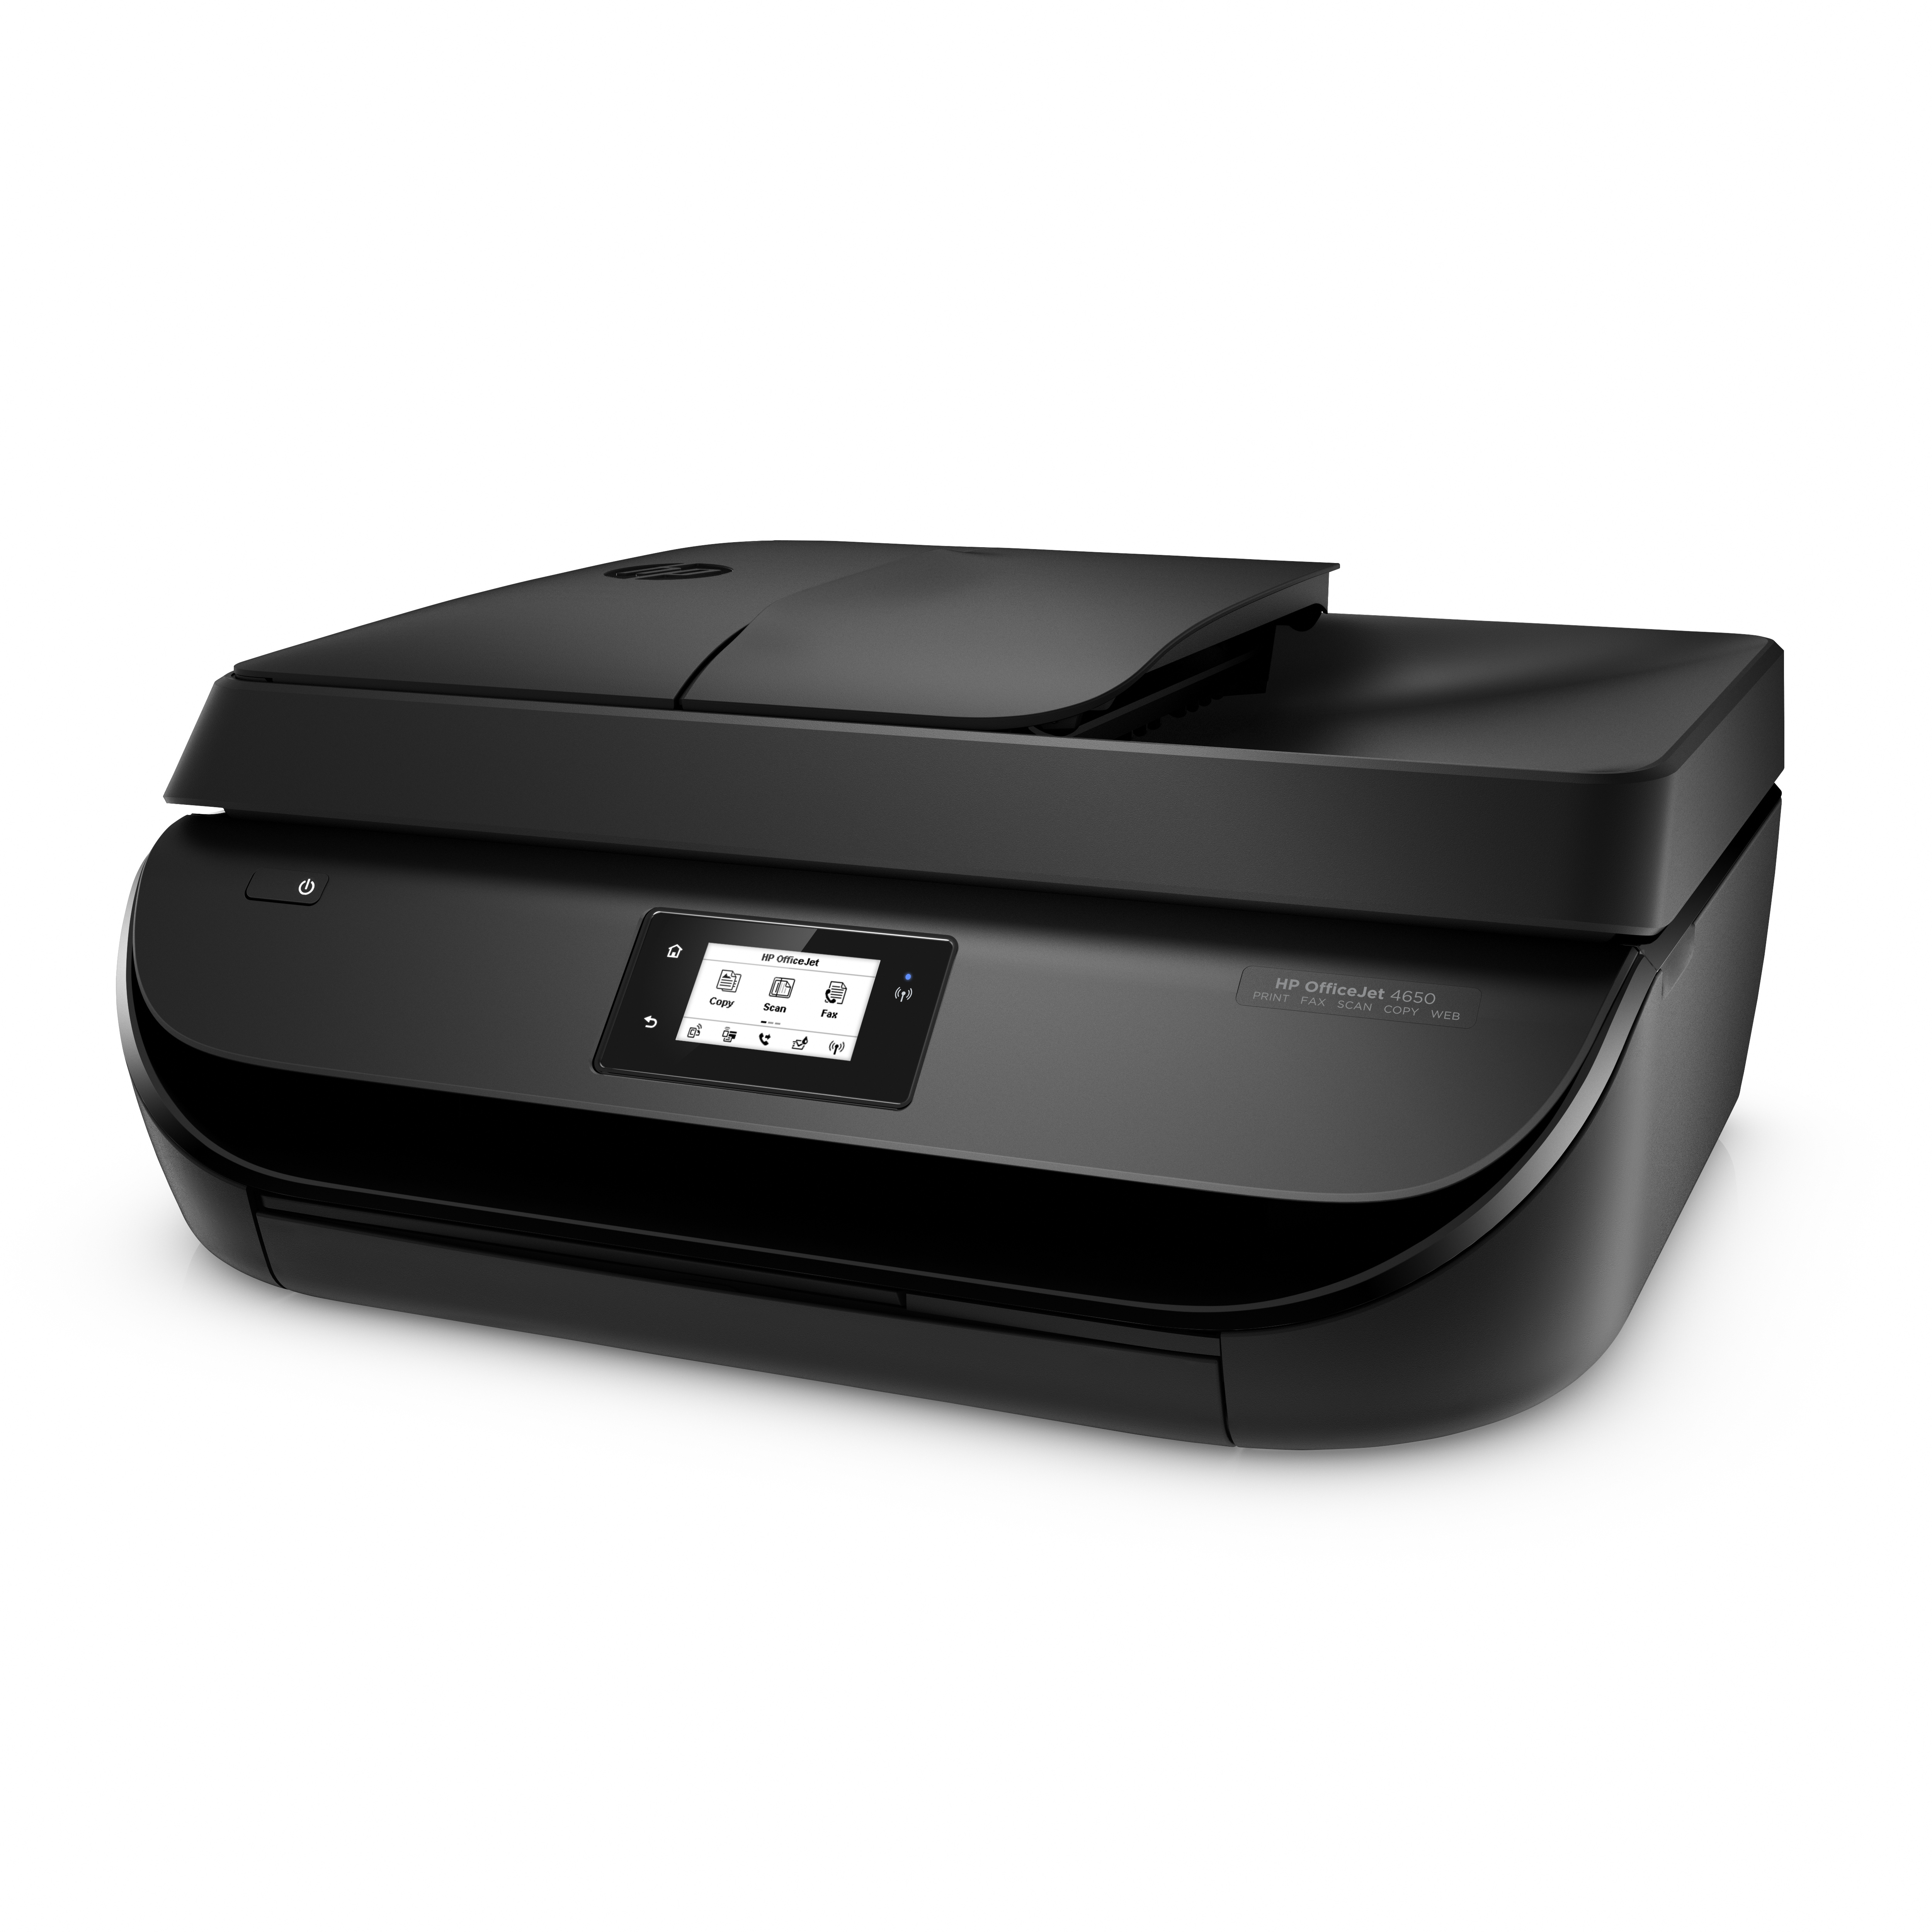 HP OfficeJet 4650 AiO Printer